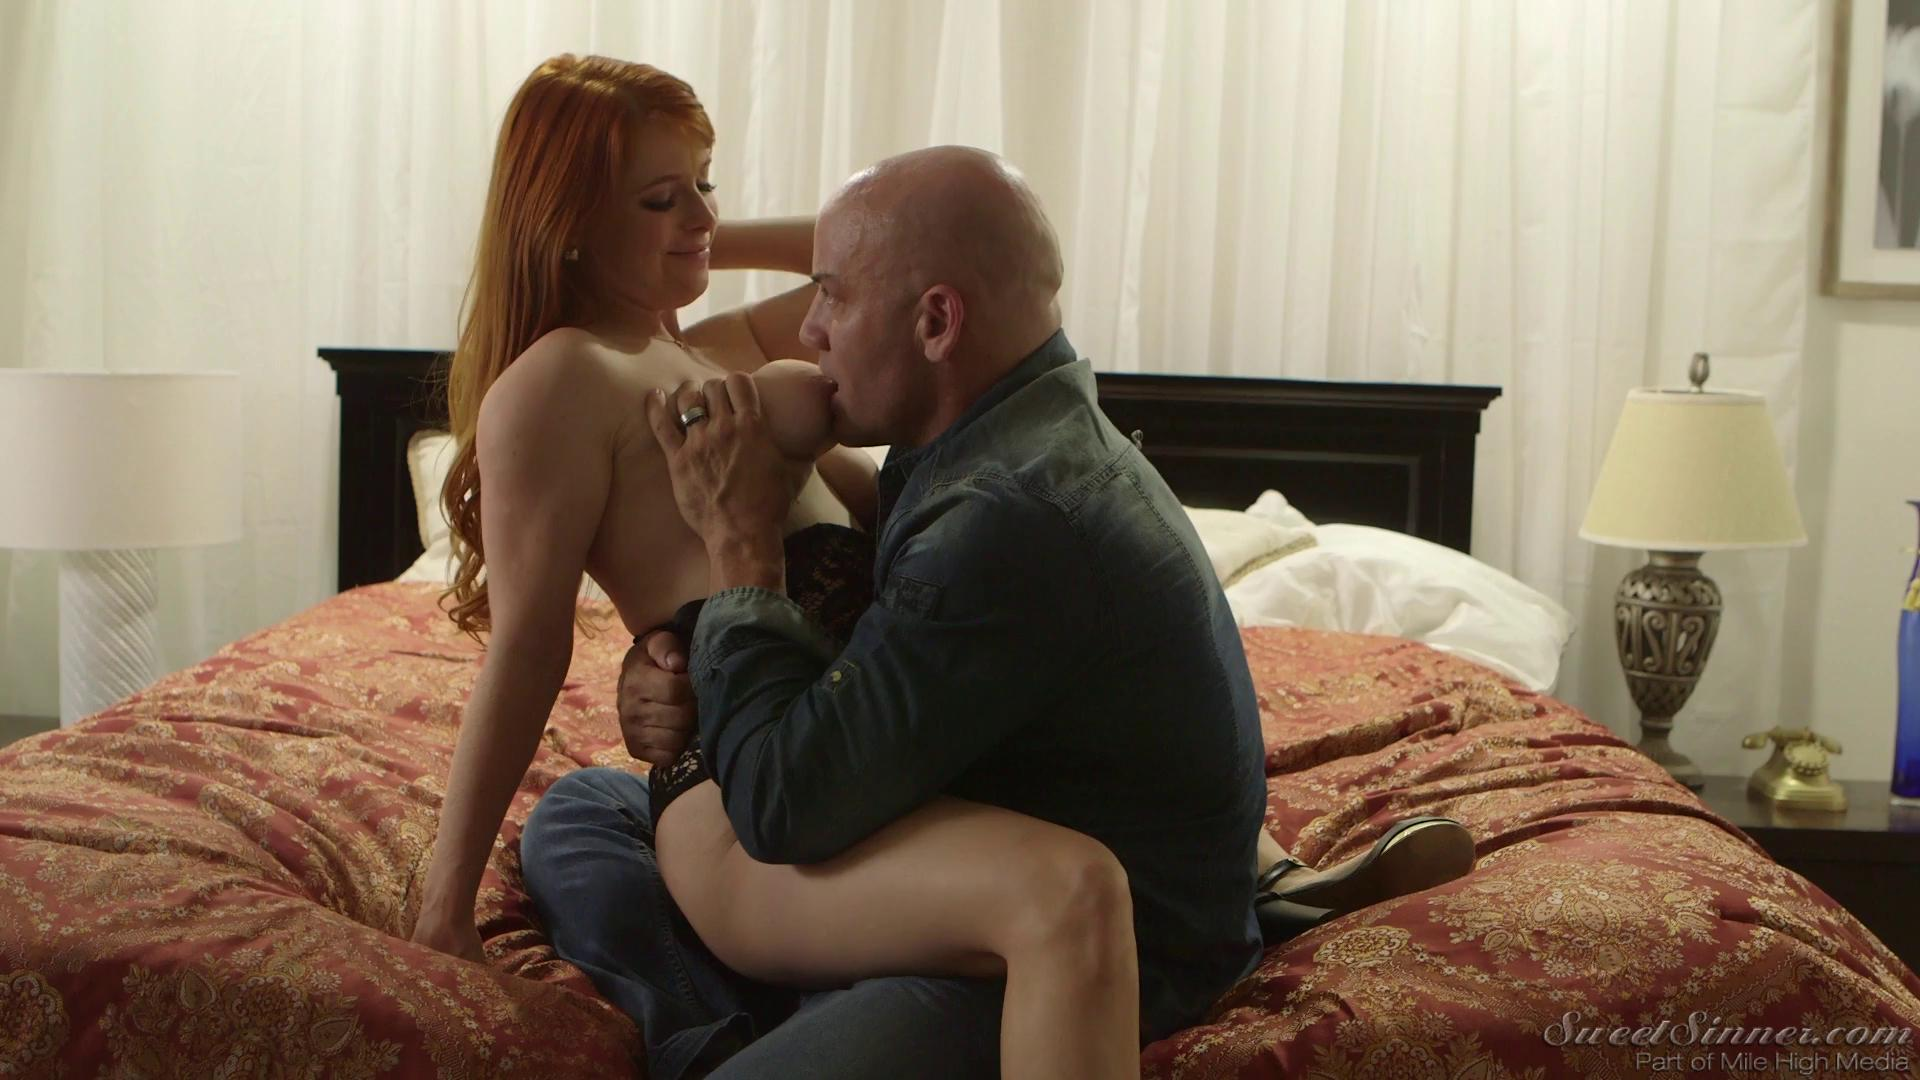 SweetSinner – Penny Pax I Want All Of You